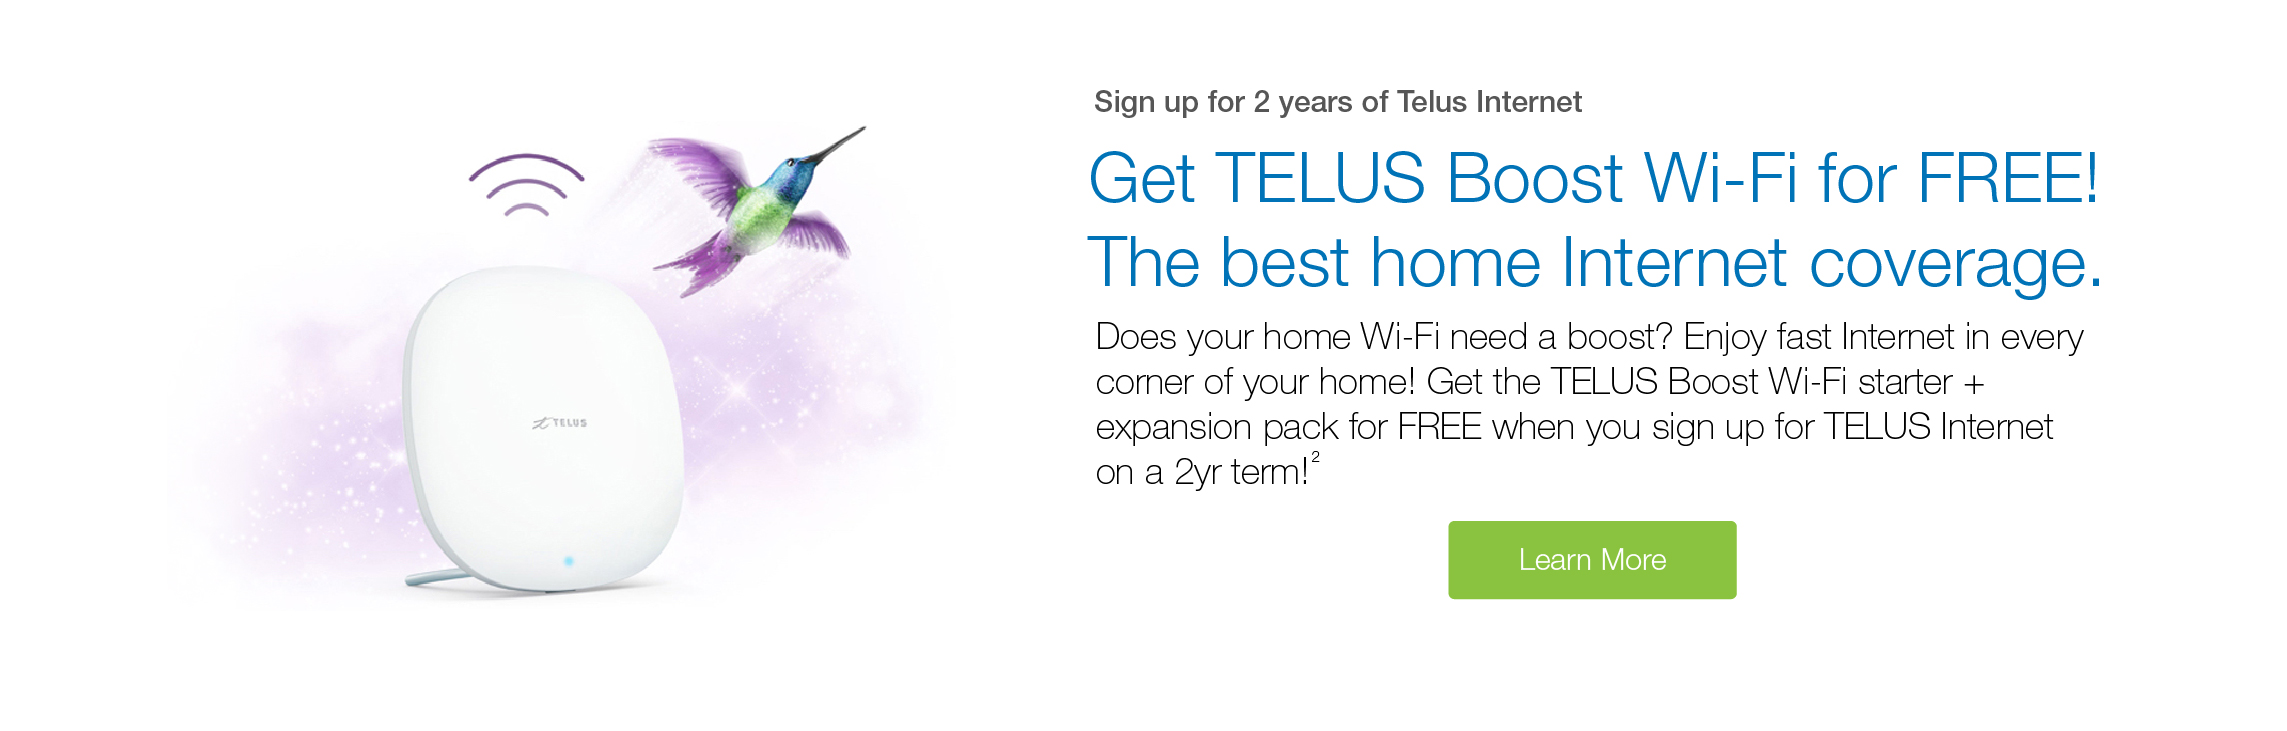 Sign Up for 2 Years of Telus Internet and Get Free TELUS Boost Wifi